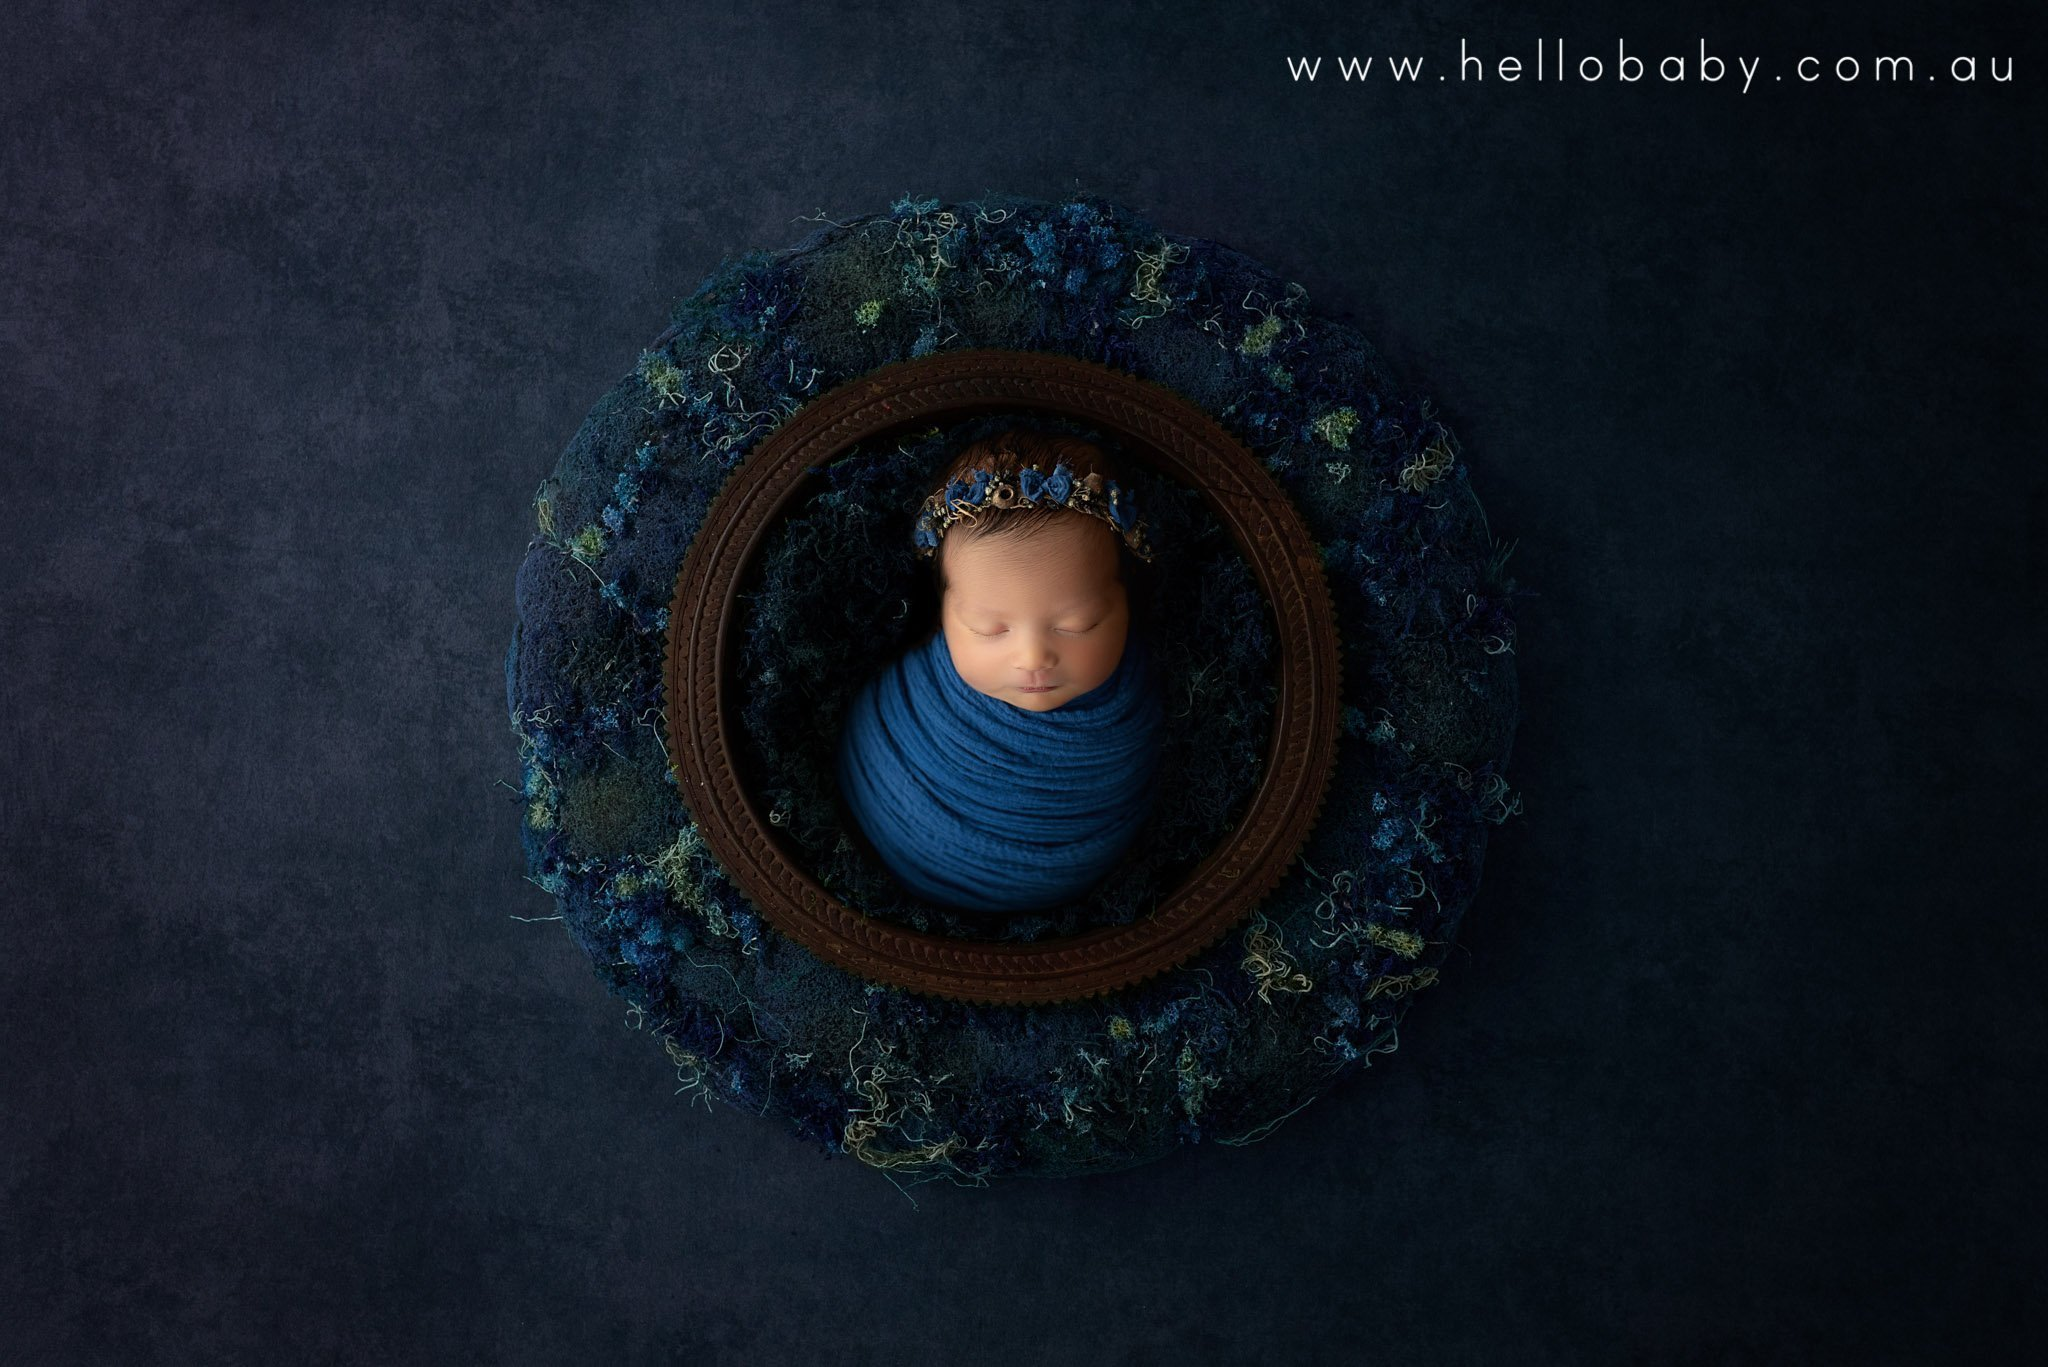 A newborn baby wrapped in blue placed in a dark brown wooden bowl in a blue wreath on a blue mat